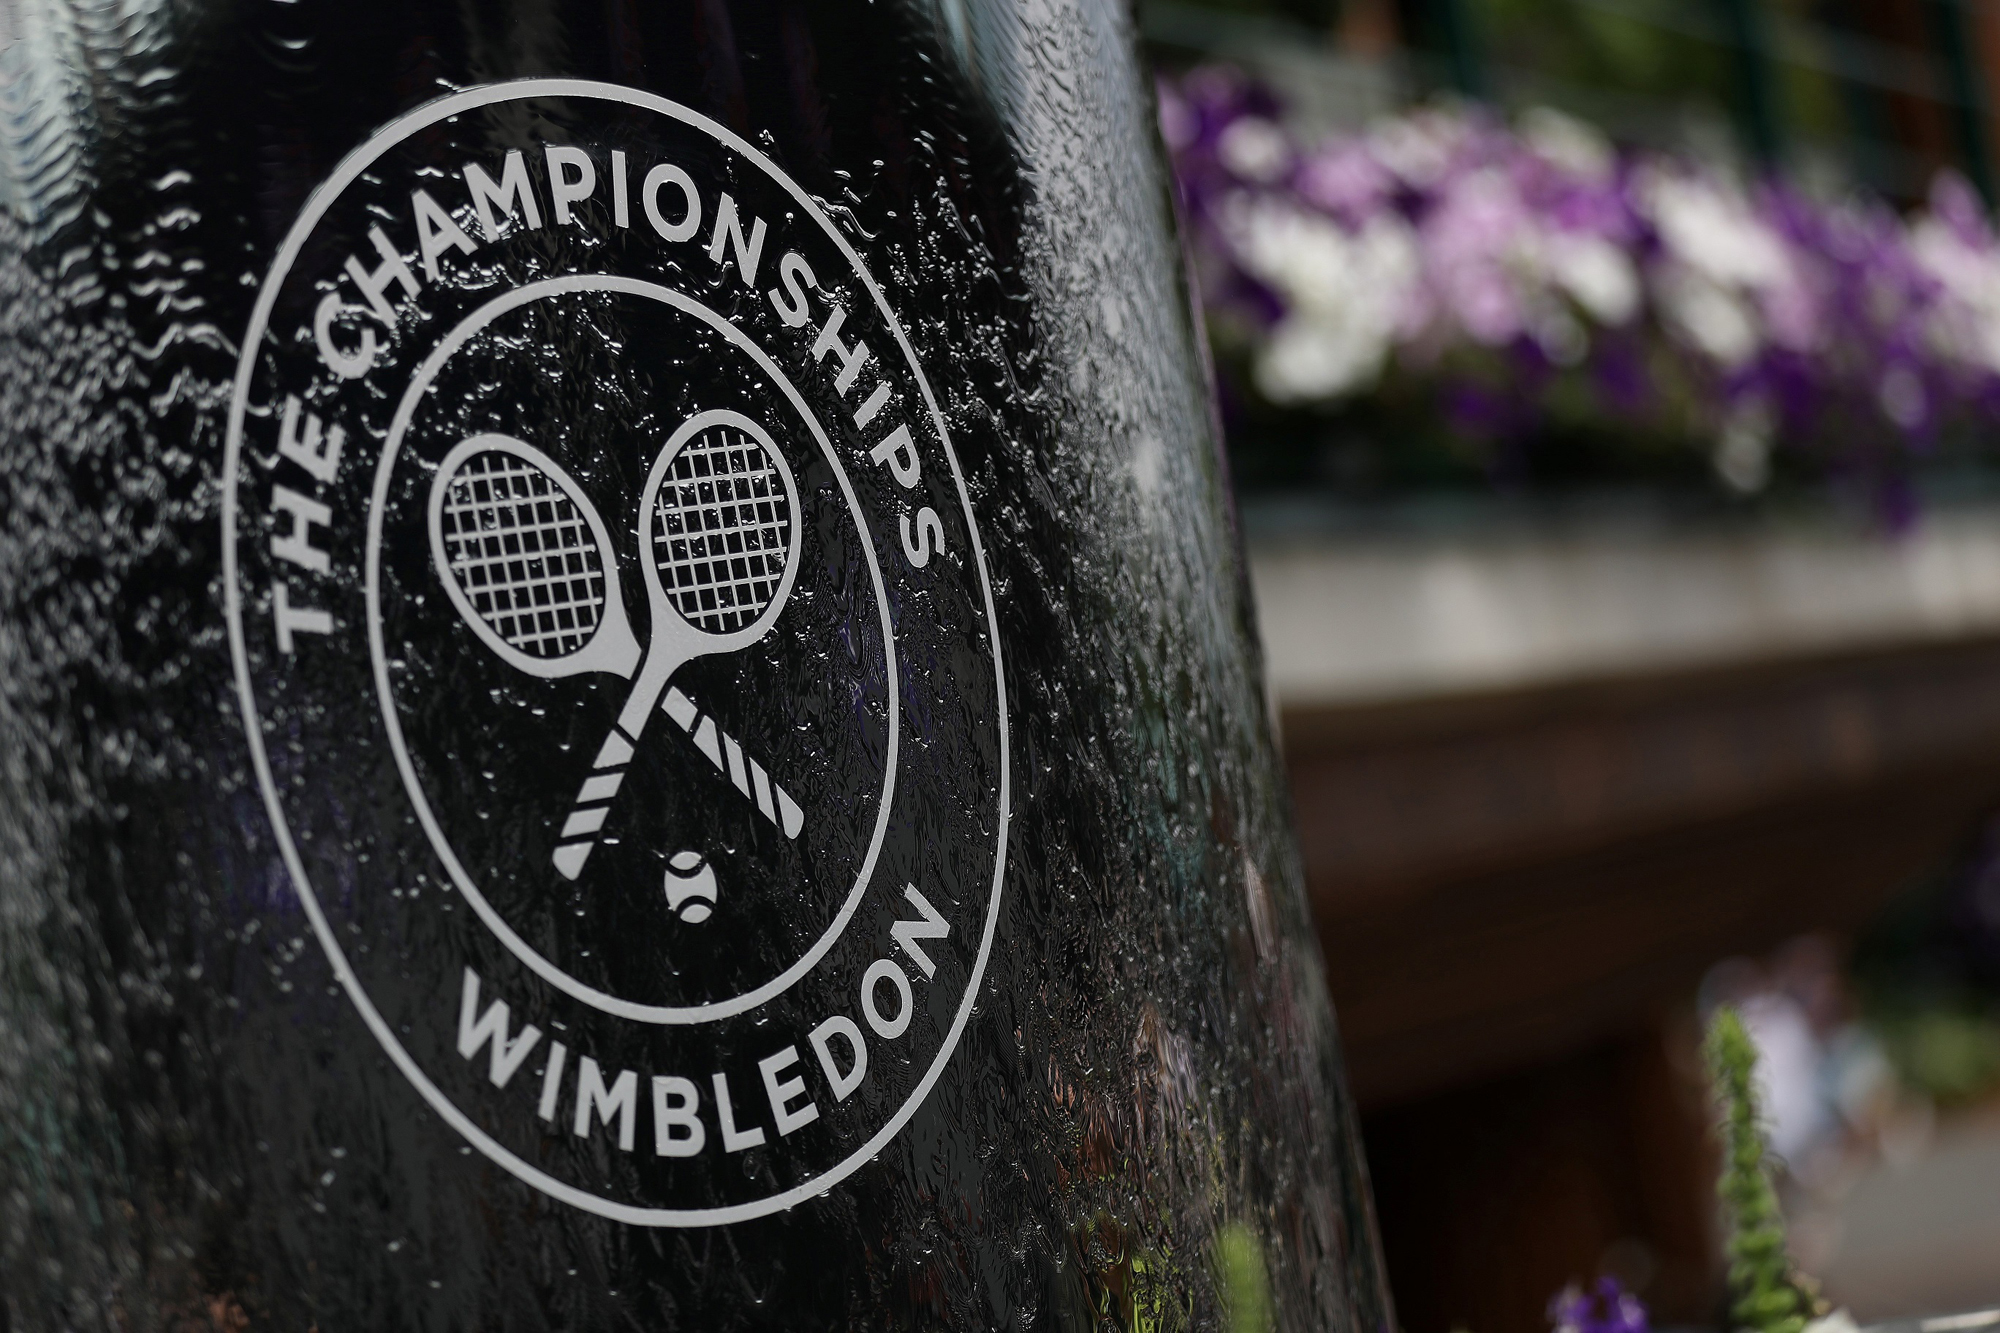 The Championships Wimbledon Keith Prowse